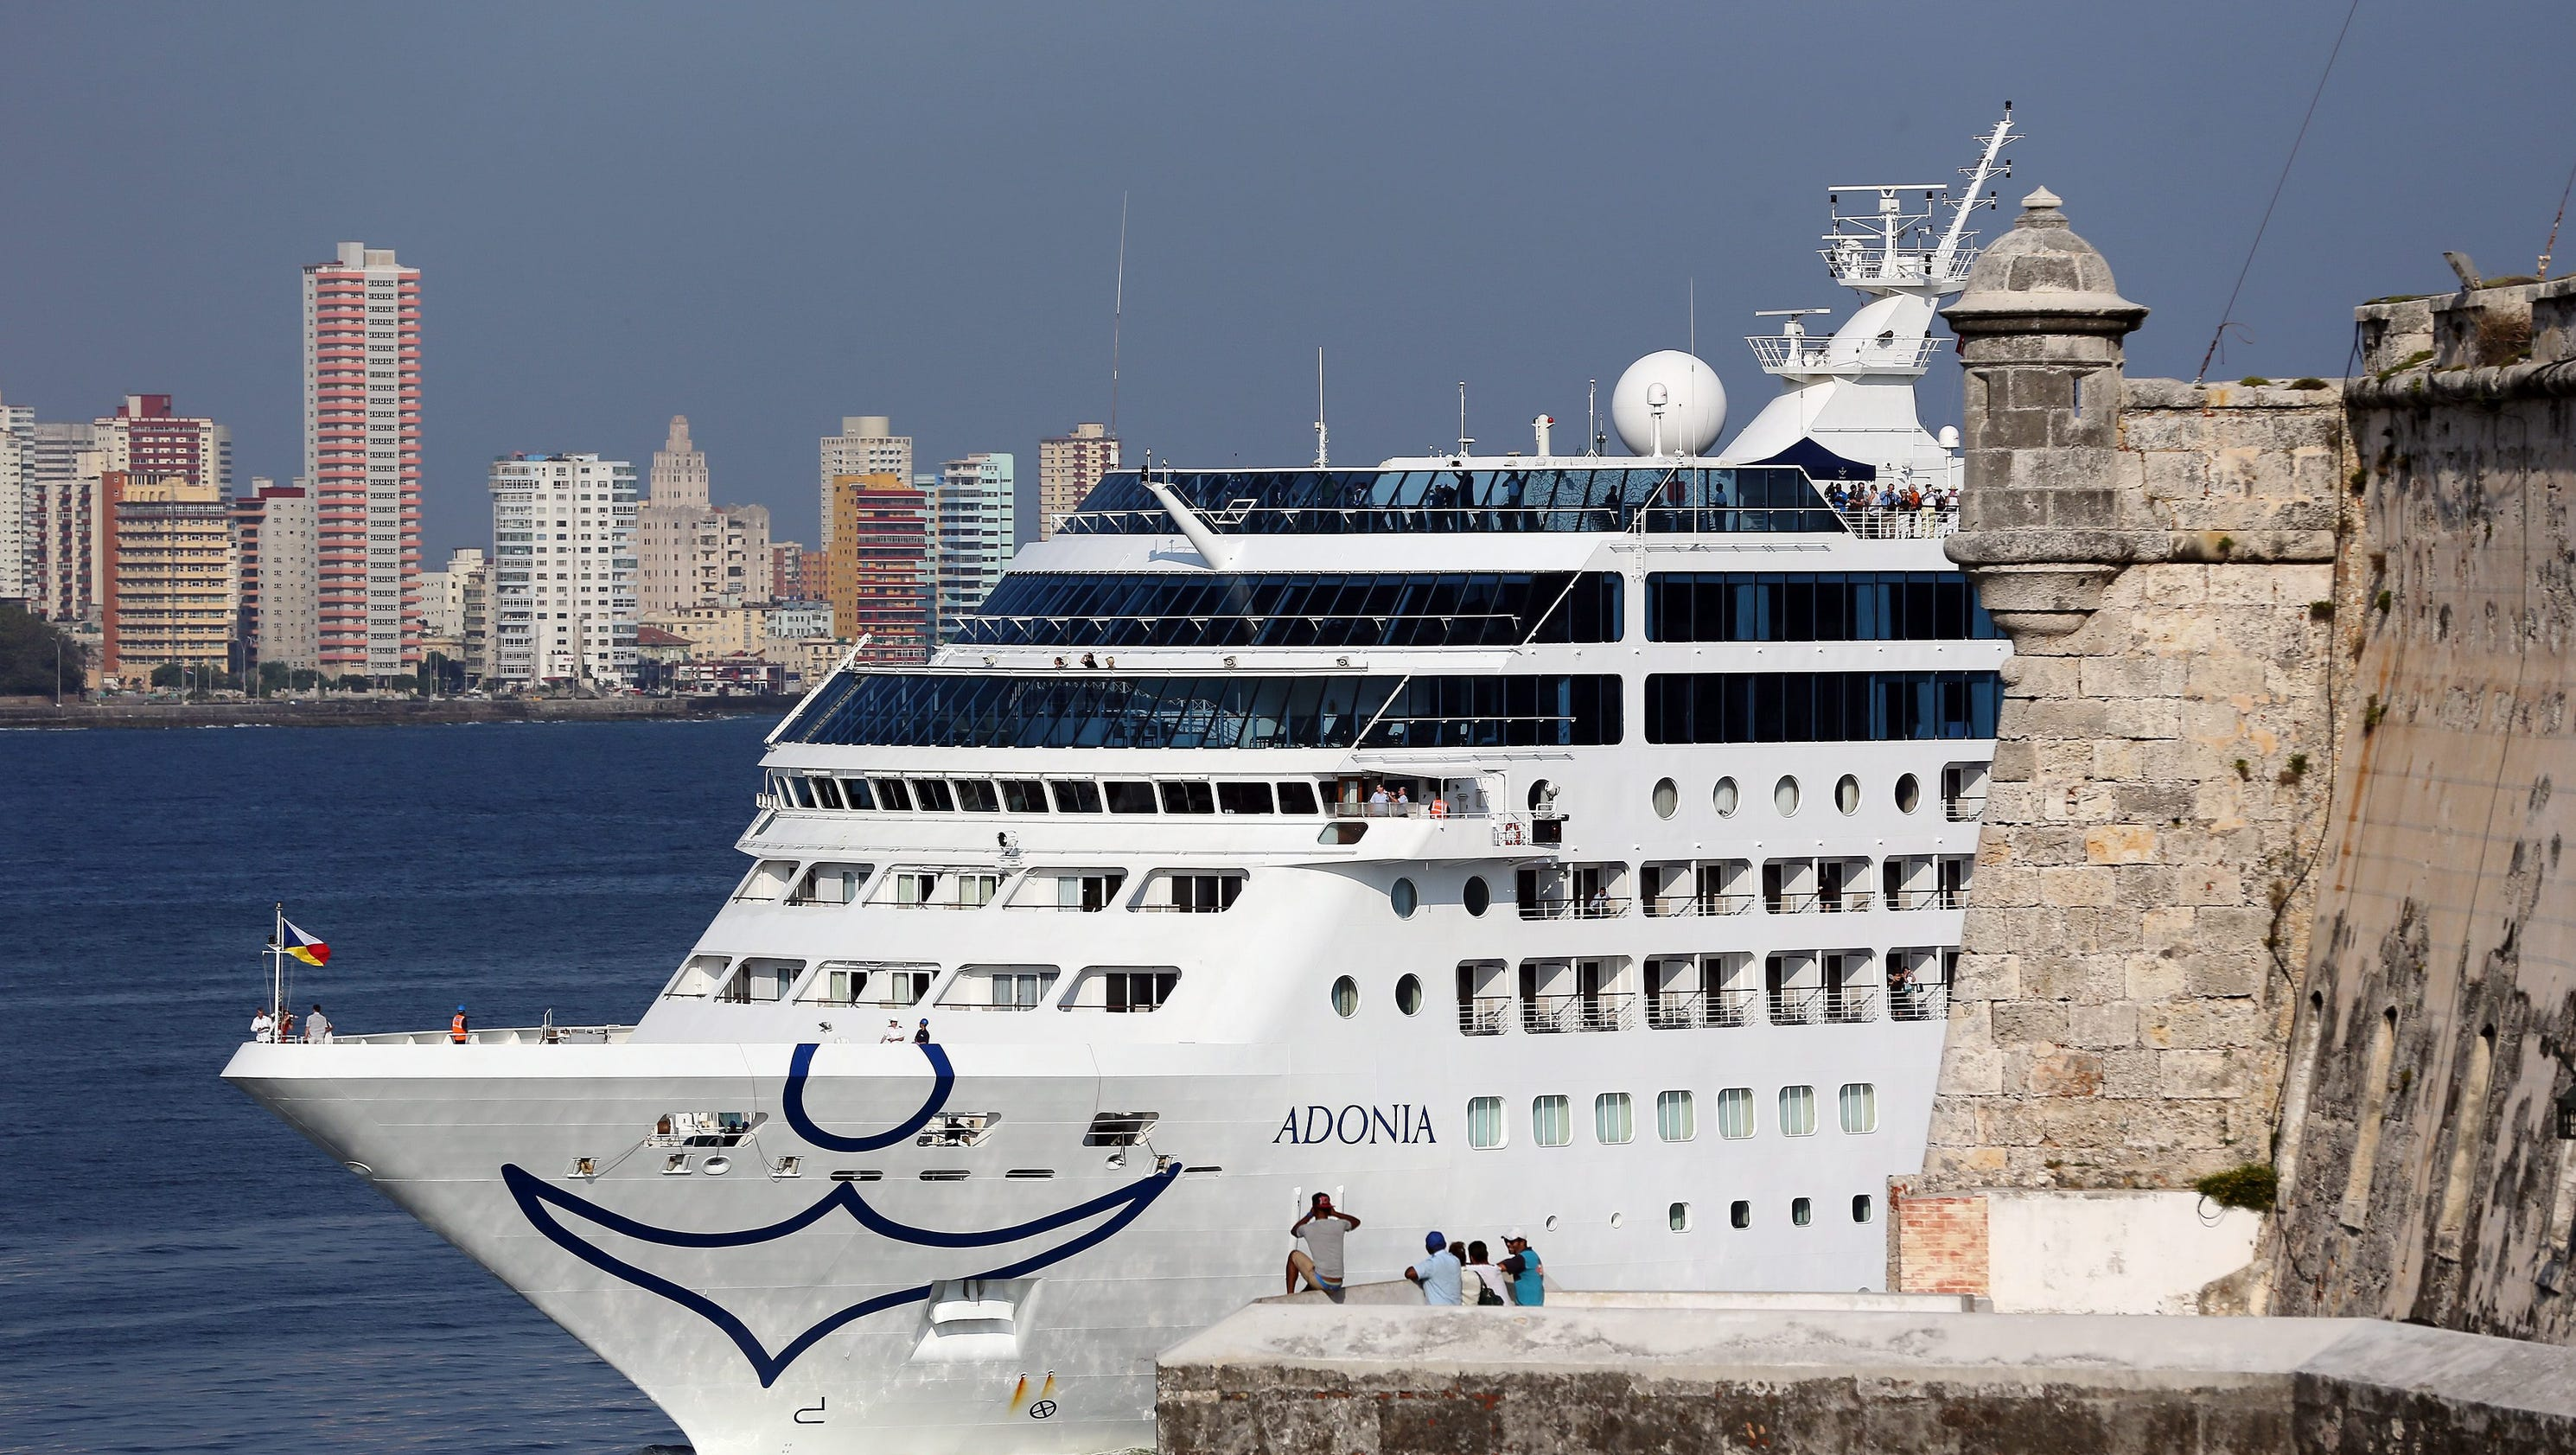 First US Cruise In Decades Arrives In Cuba - Adonia cruise ship